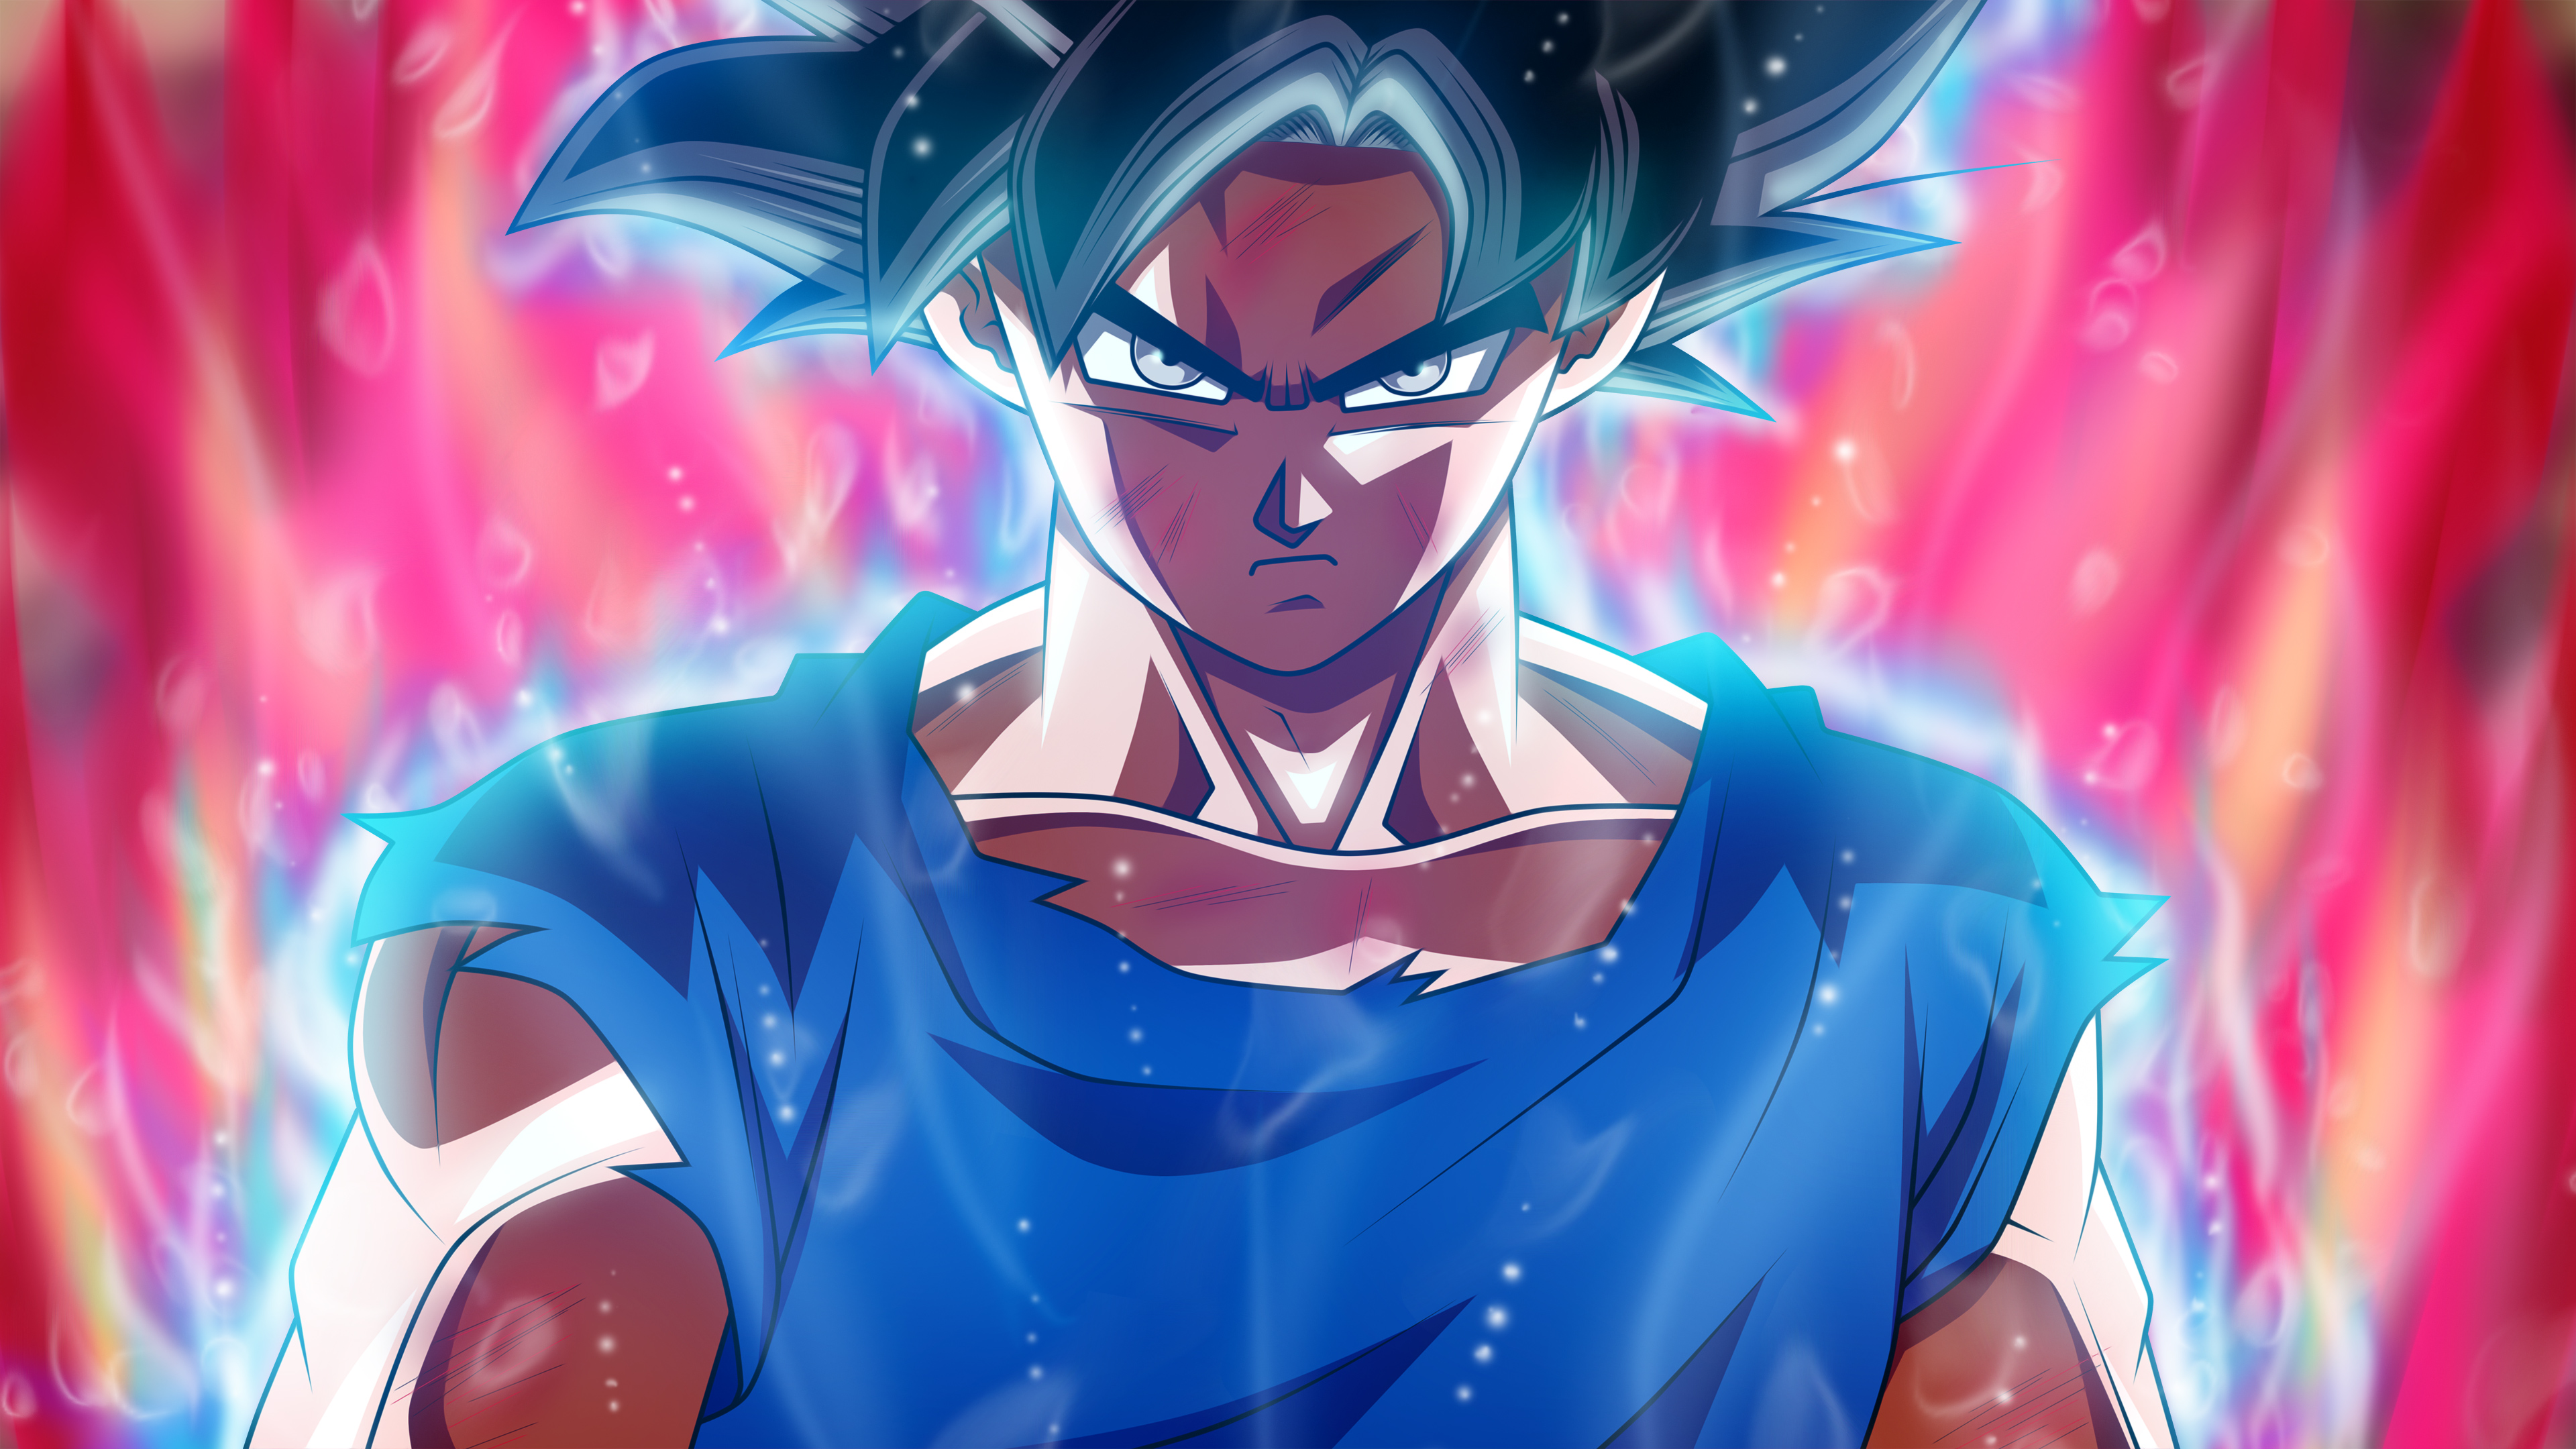 Ultra Instinct Goku 4k Hd Anime 4k Wallpapers Images